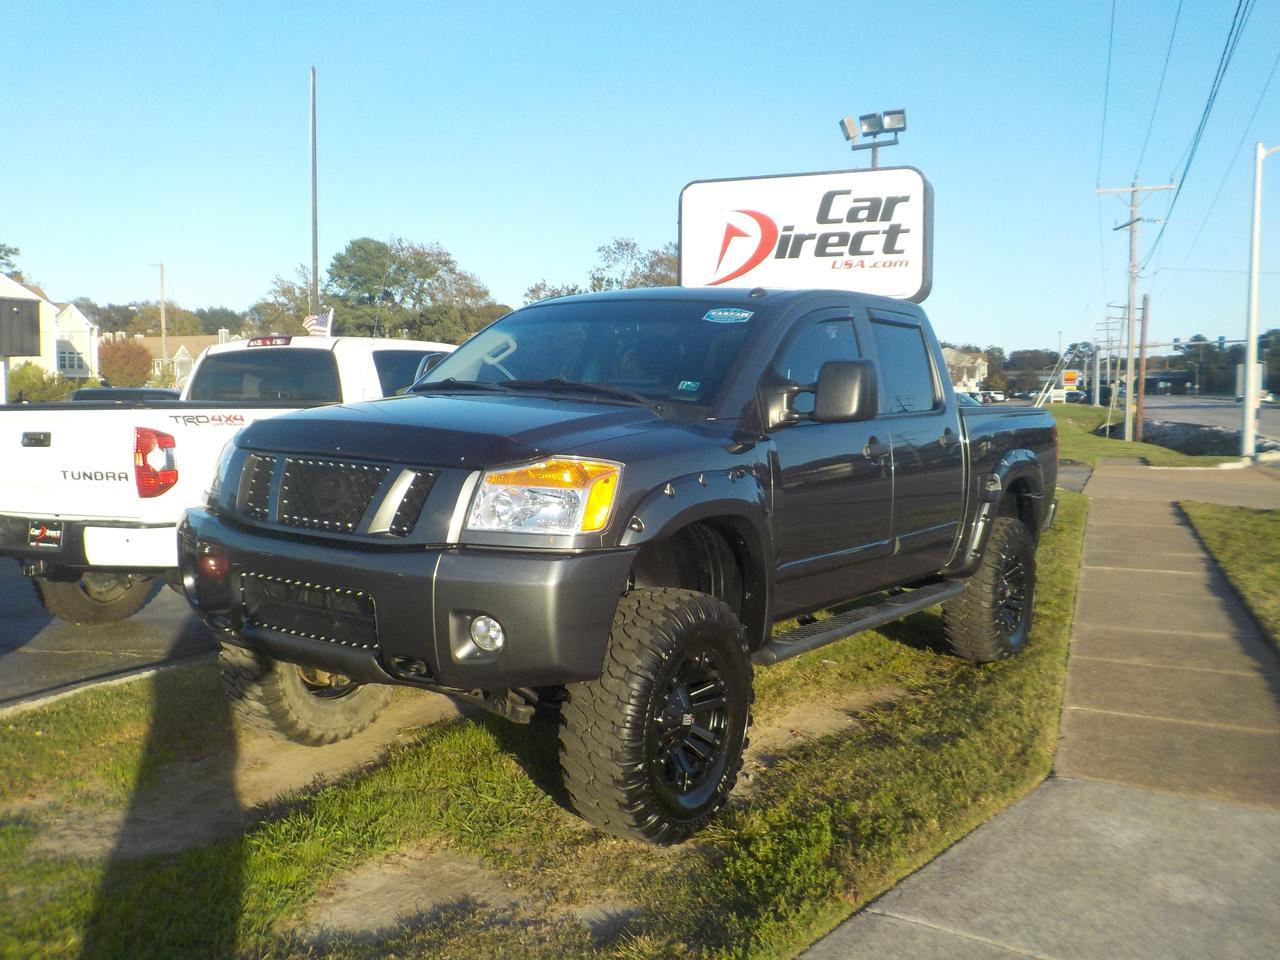 2012 NISSAN TITAN PRO-4X CREW CAB 4X4, XD SERIES RIMS, ROCKFORD FOSGATE SOUND, TOW PKG, LEATHER, ONLY 52K MILES! Virginia Beach VA